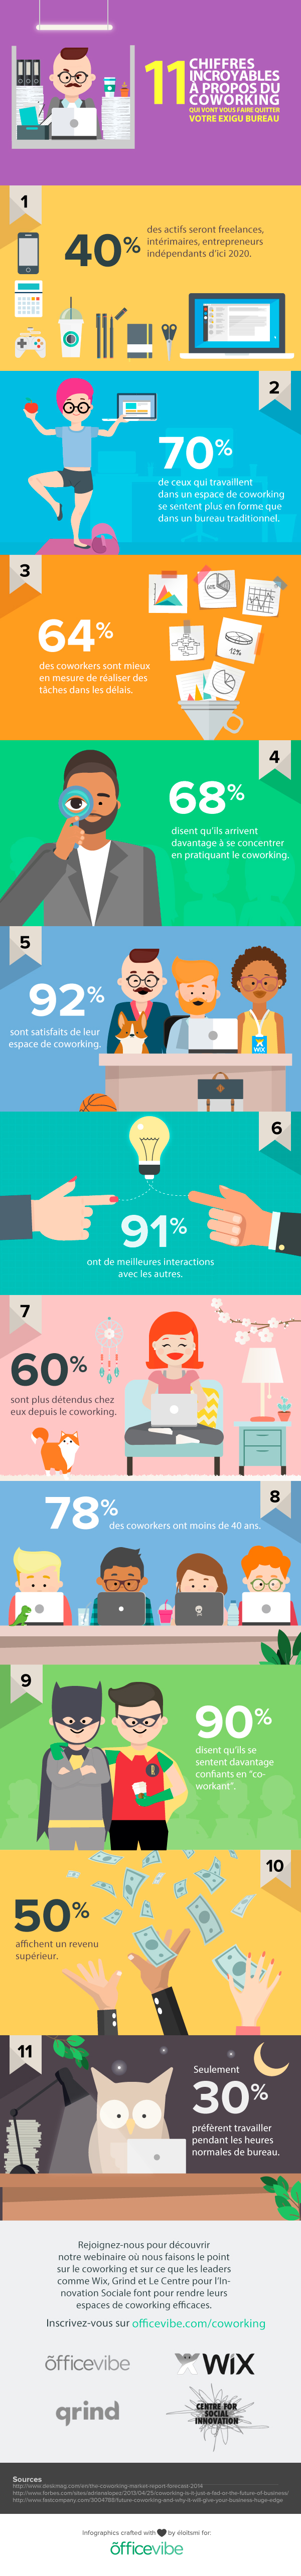 infographie-coworking